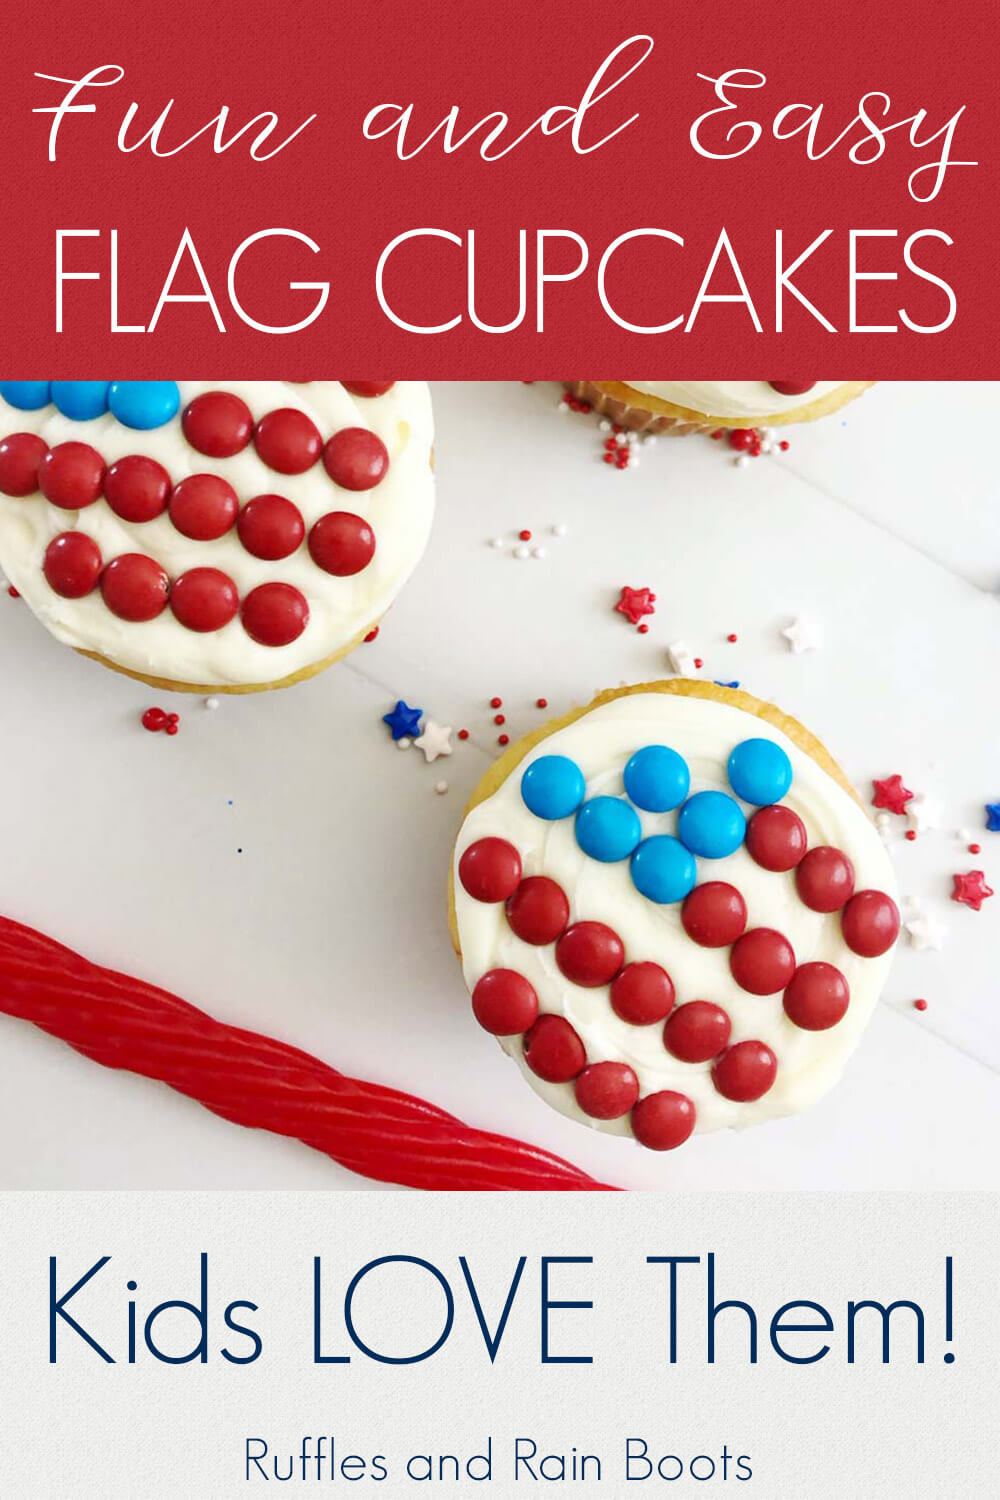 overhead view of 3 flag cupcakes, white cupcakes decorated with a flag made of candy, on a white background with text which reads fun and easy flag cupcakes and Kids LOVE them!